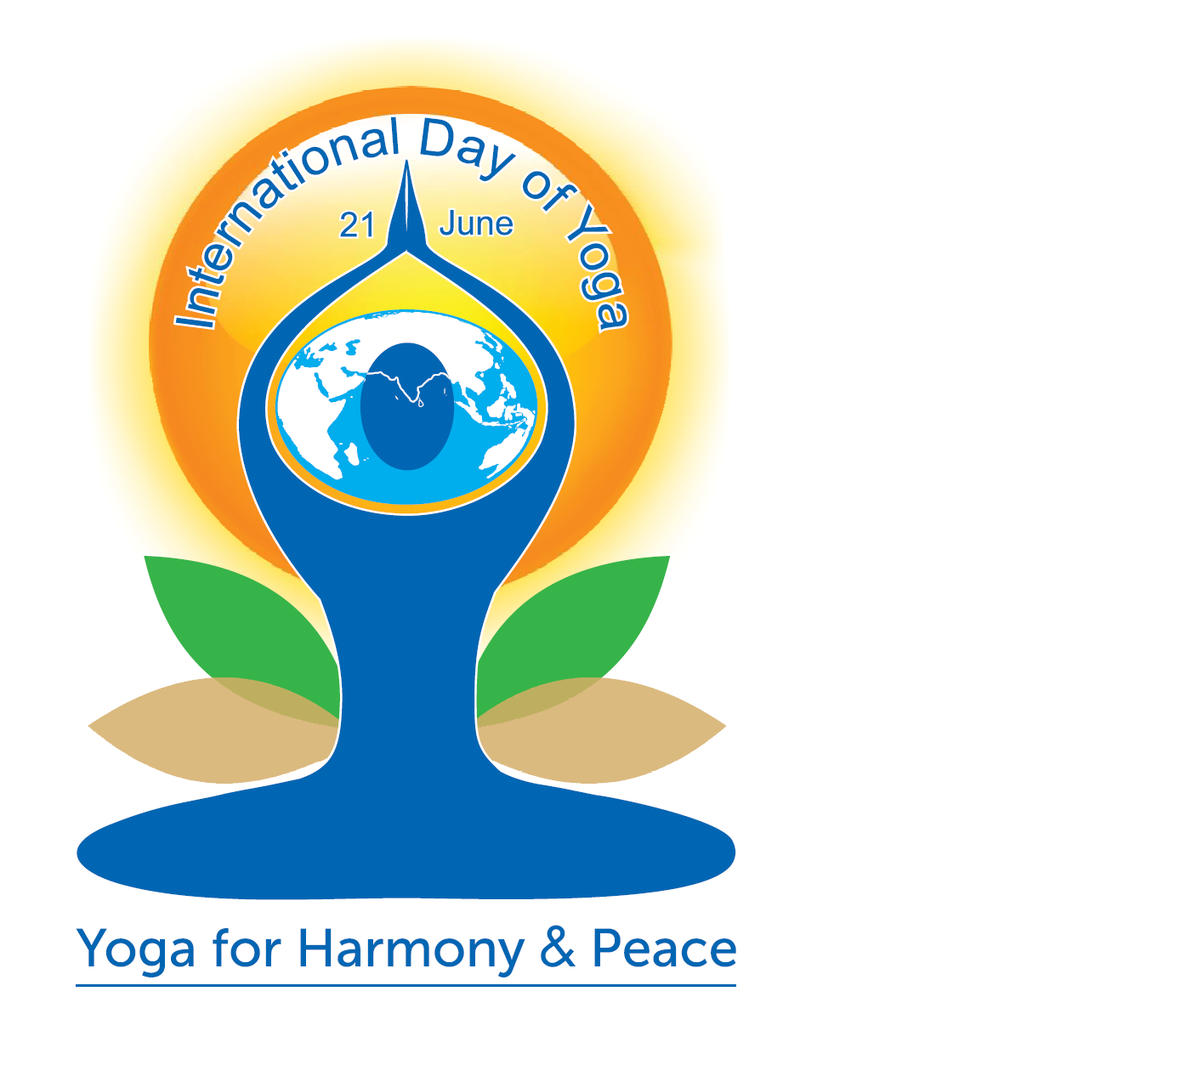 Attachment international-yoga-day-logo-png-3-transparent.png